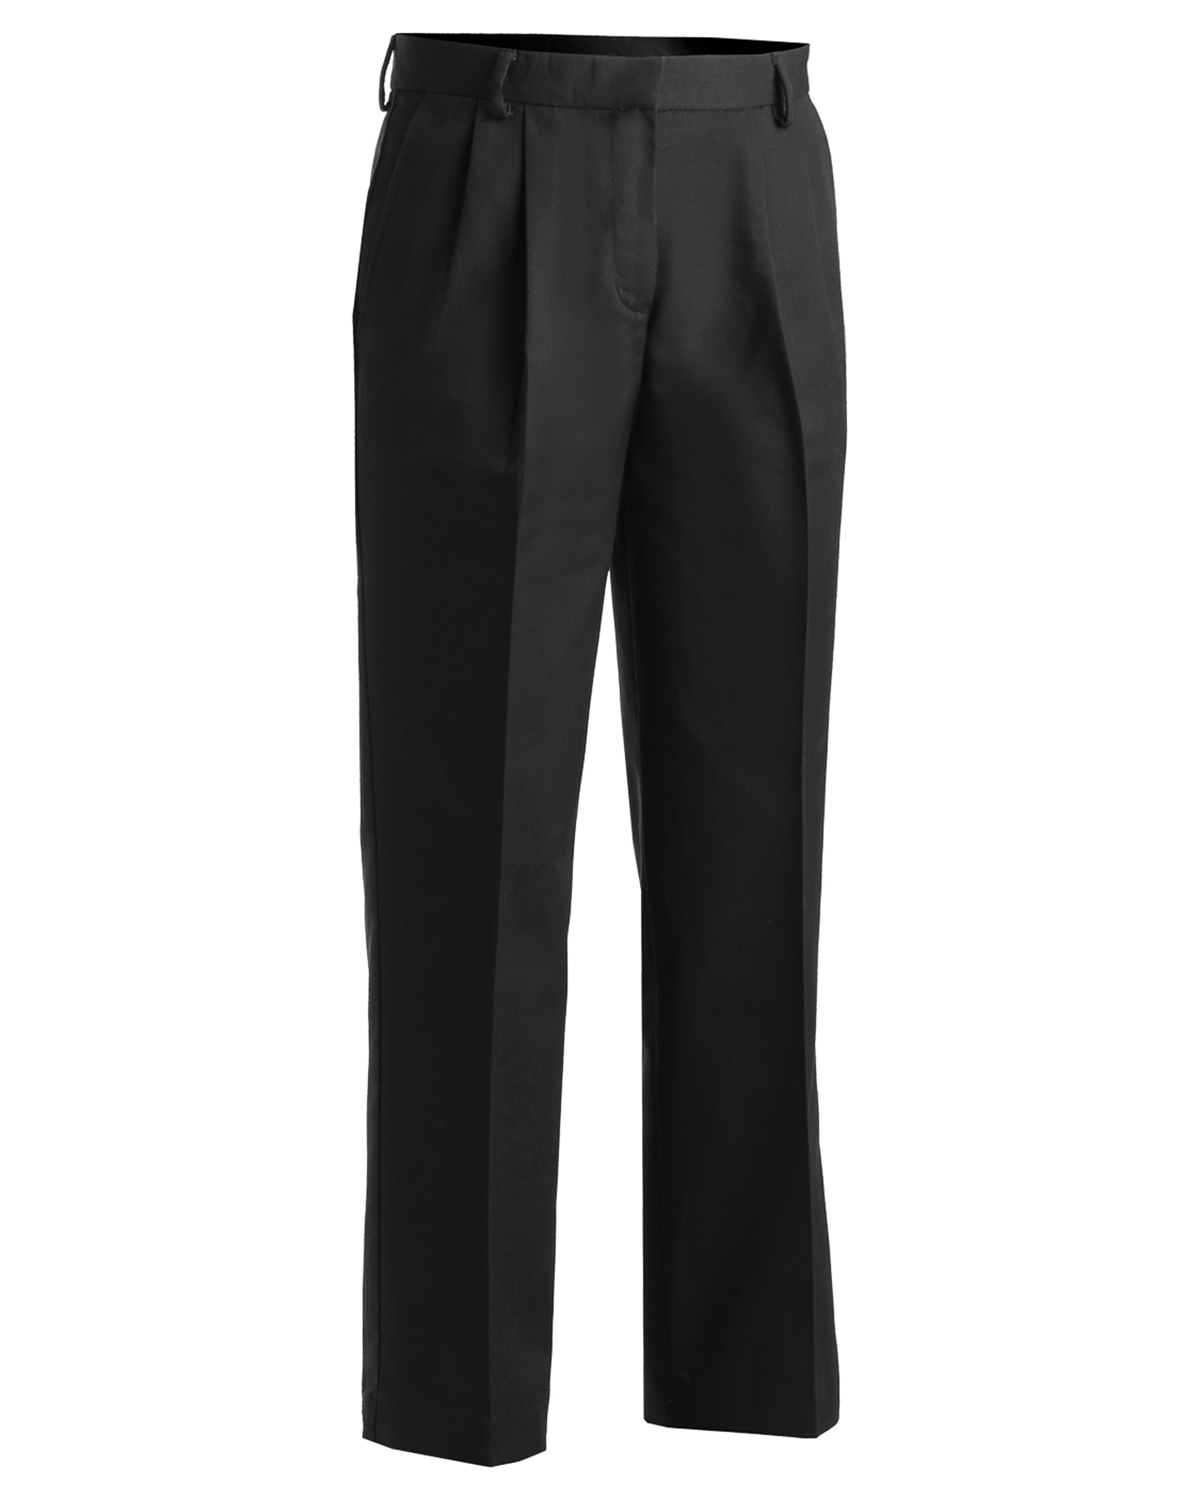 Edwards 8619 Women's Back Pocket Wrinkle Reistant Pleated Pant at GotApparel